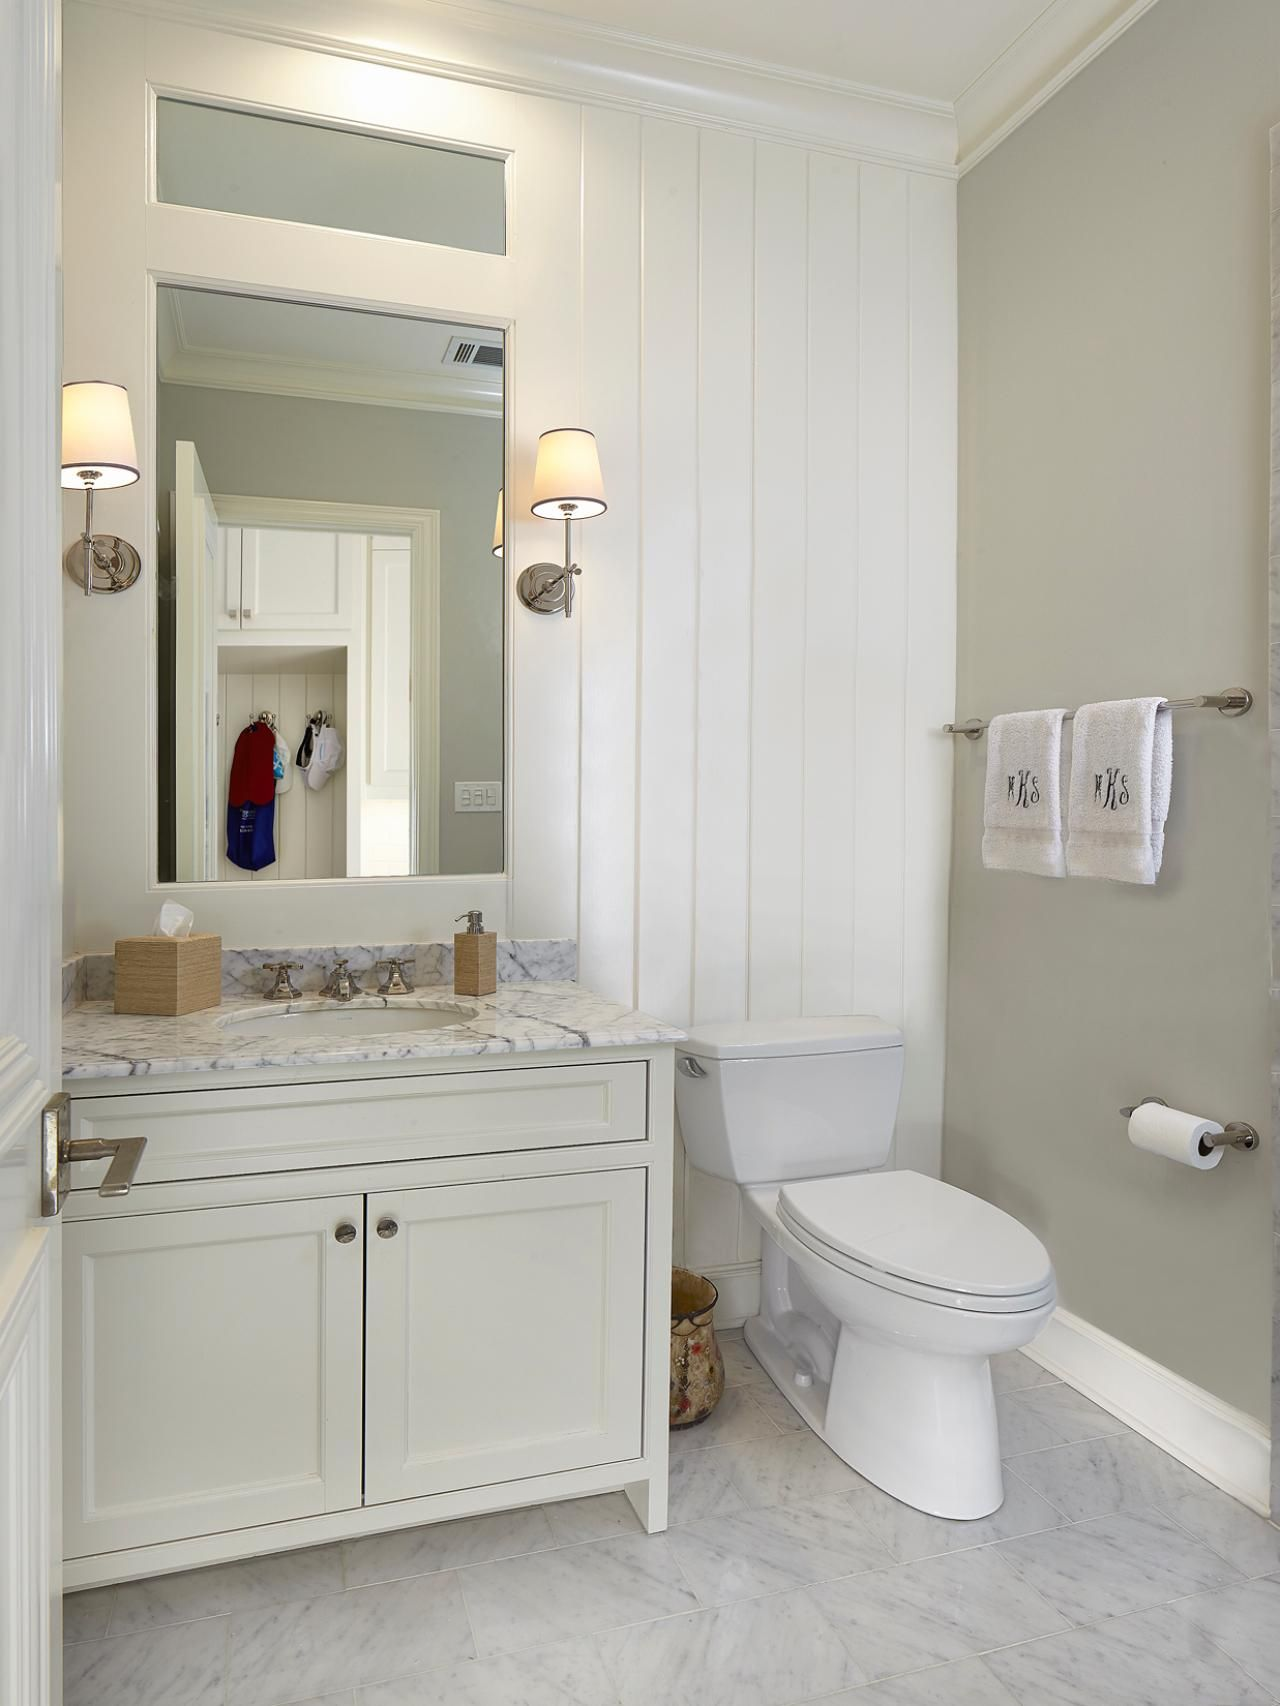 Best Kitchen Gallery: New England Bathroom White Paneling Google Search Home Decor of New England Bathrooms Designs  on rachelxblog.com